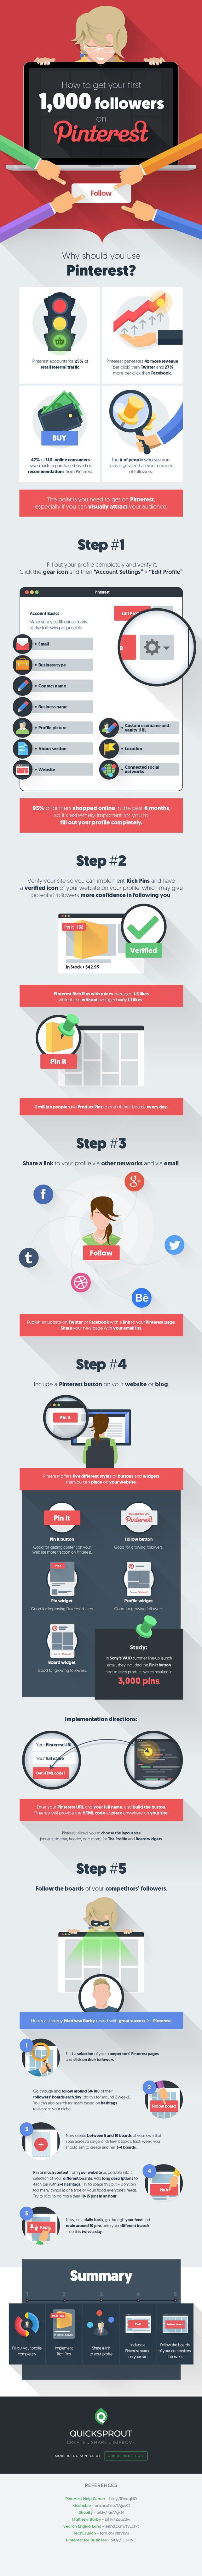 Pinterest marketing: get your first 1,000 followers by following these steps. Click to blog for 7 more tips and FREE e-course! Perfect for bloggers, entrepreneurs, and small business owners. #pinterestmarketing #infographic